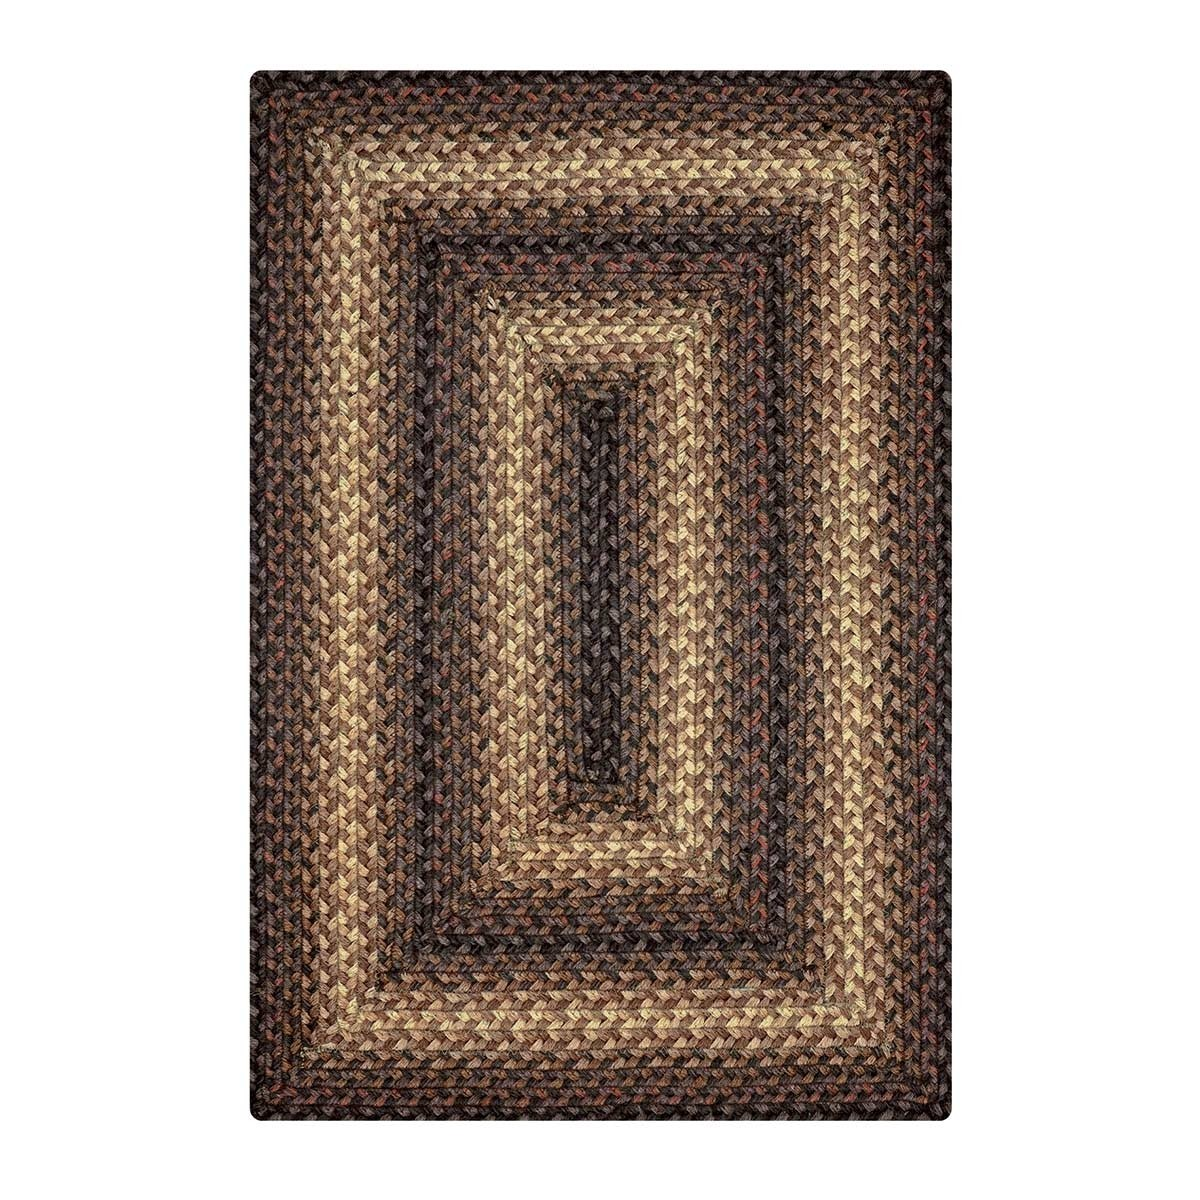 Buy Kenya Brown Jute Braided Rugs Online  Homespice